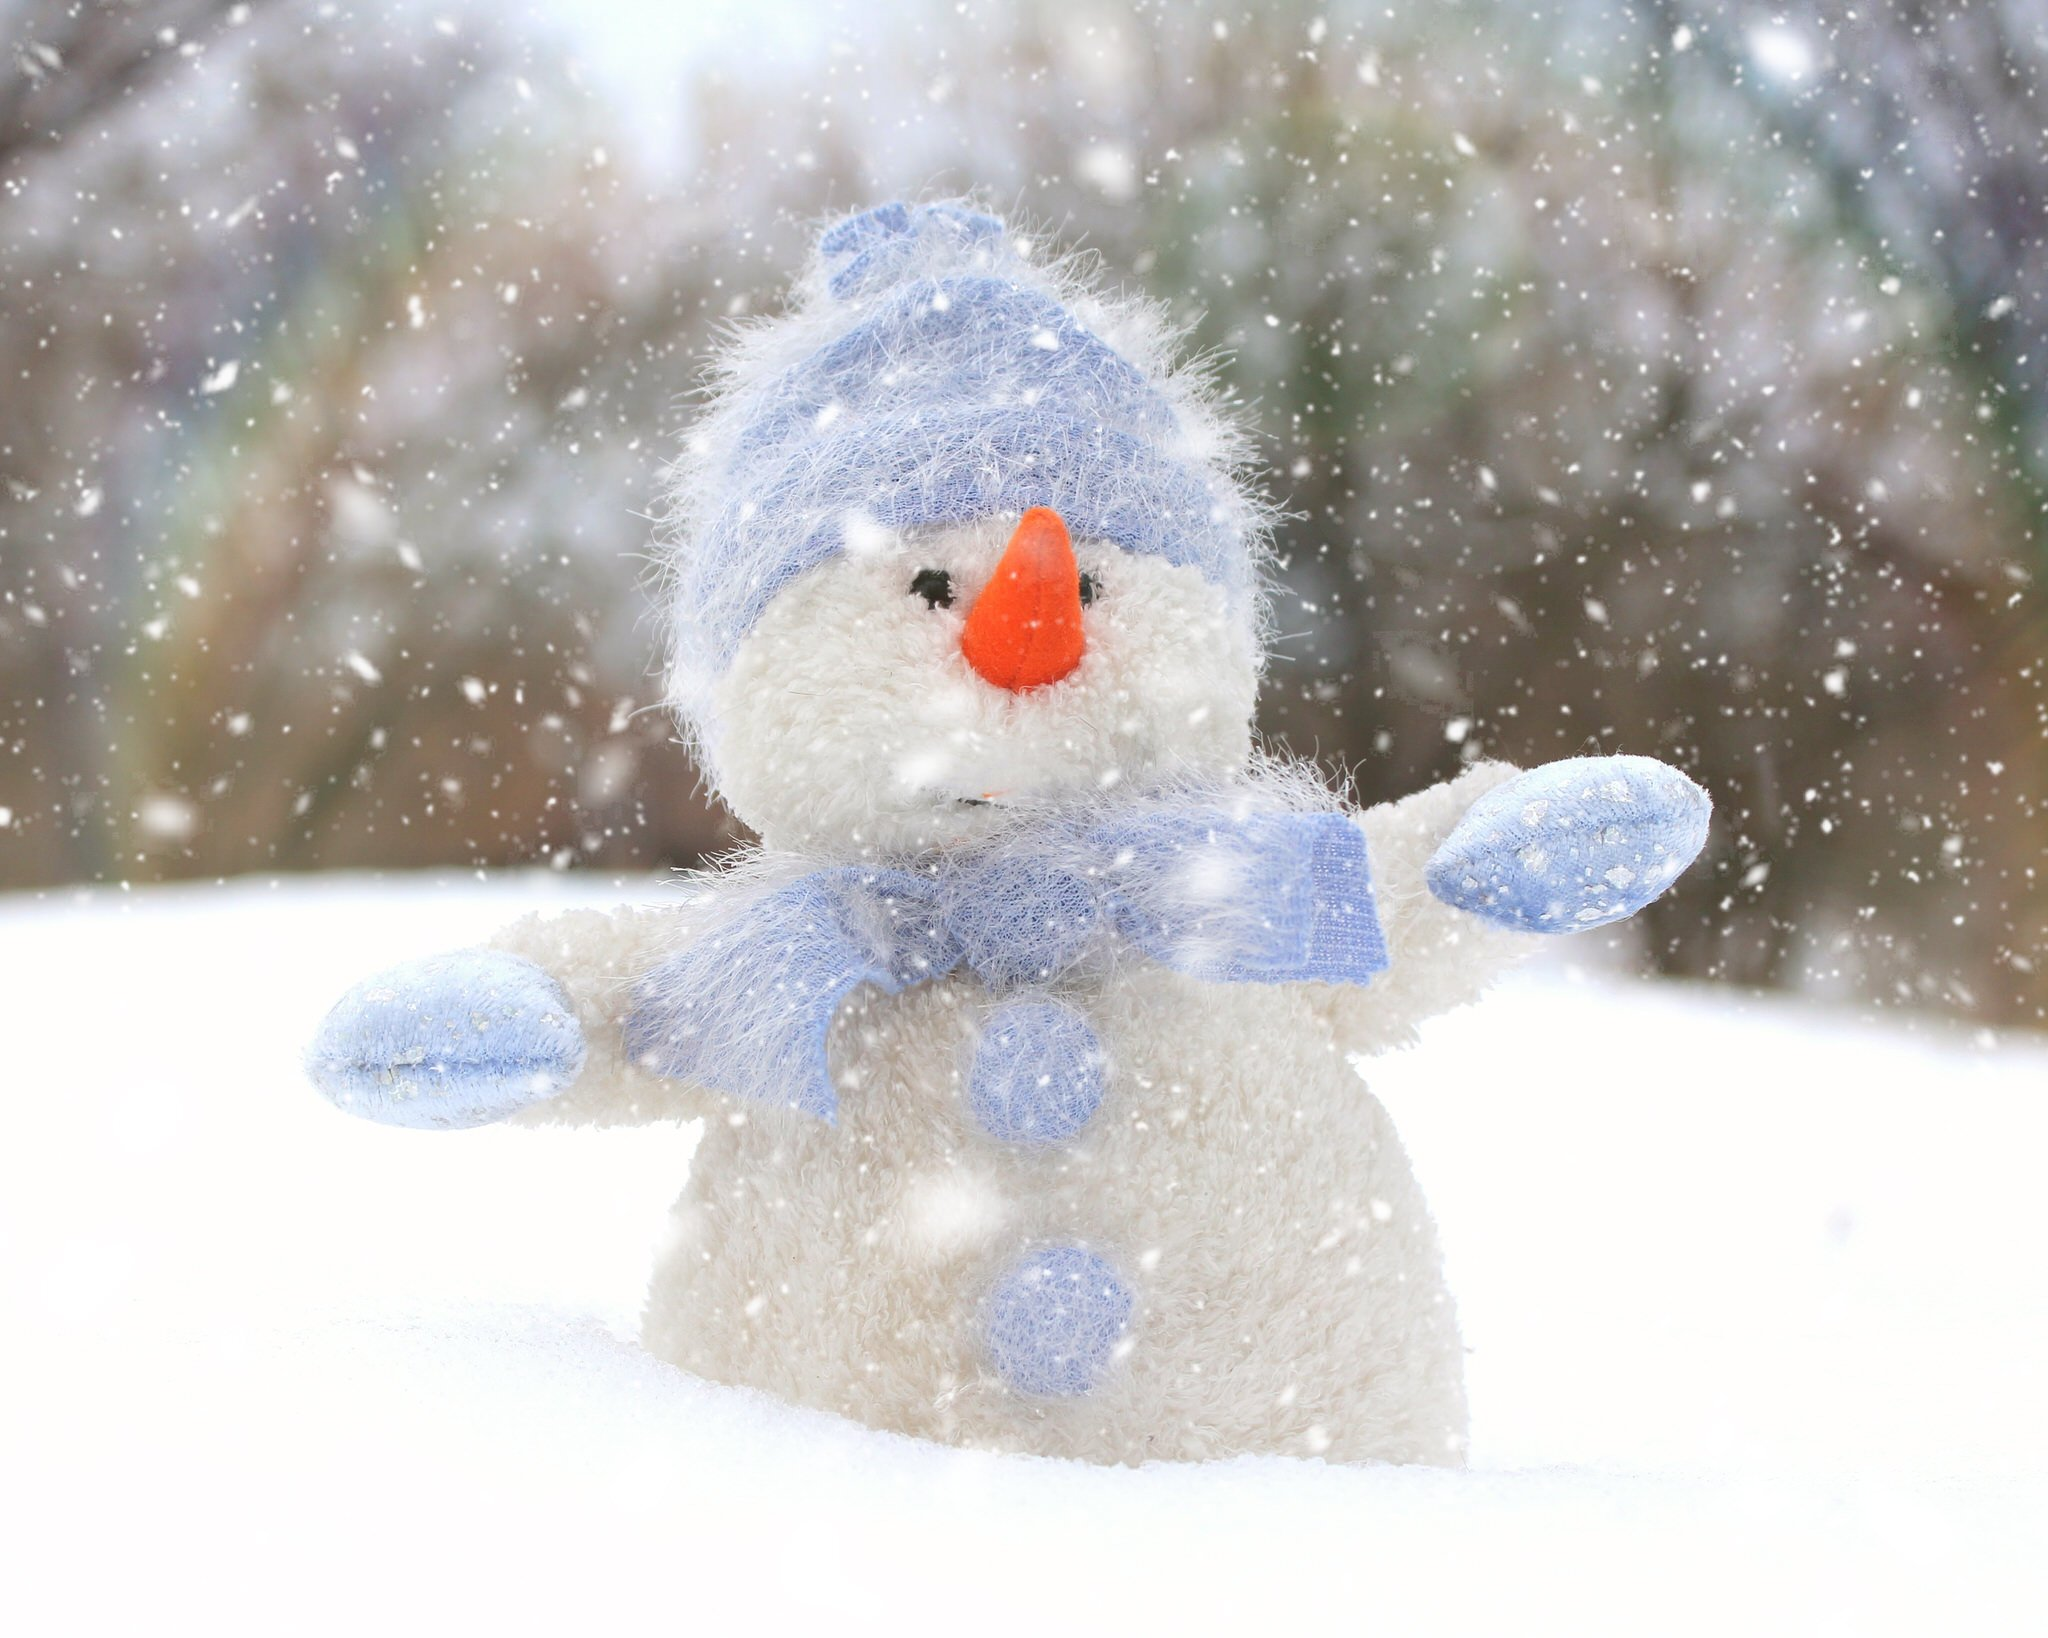 Alana Lee Photography: snowman after adding a snow overlay in photoshop